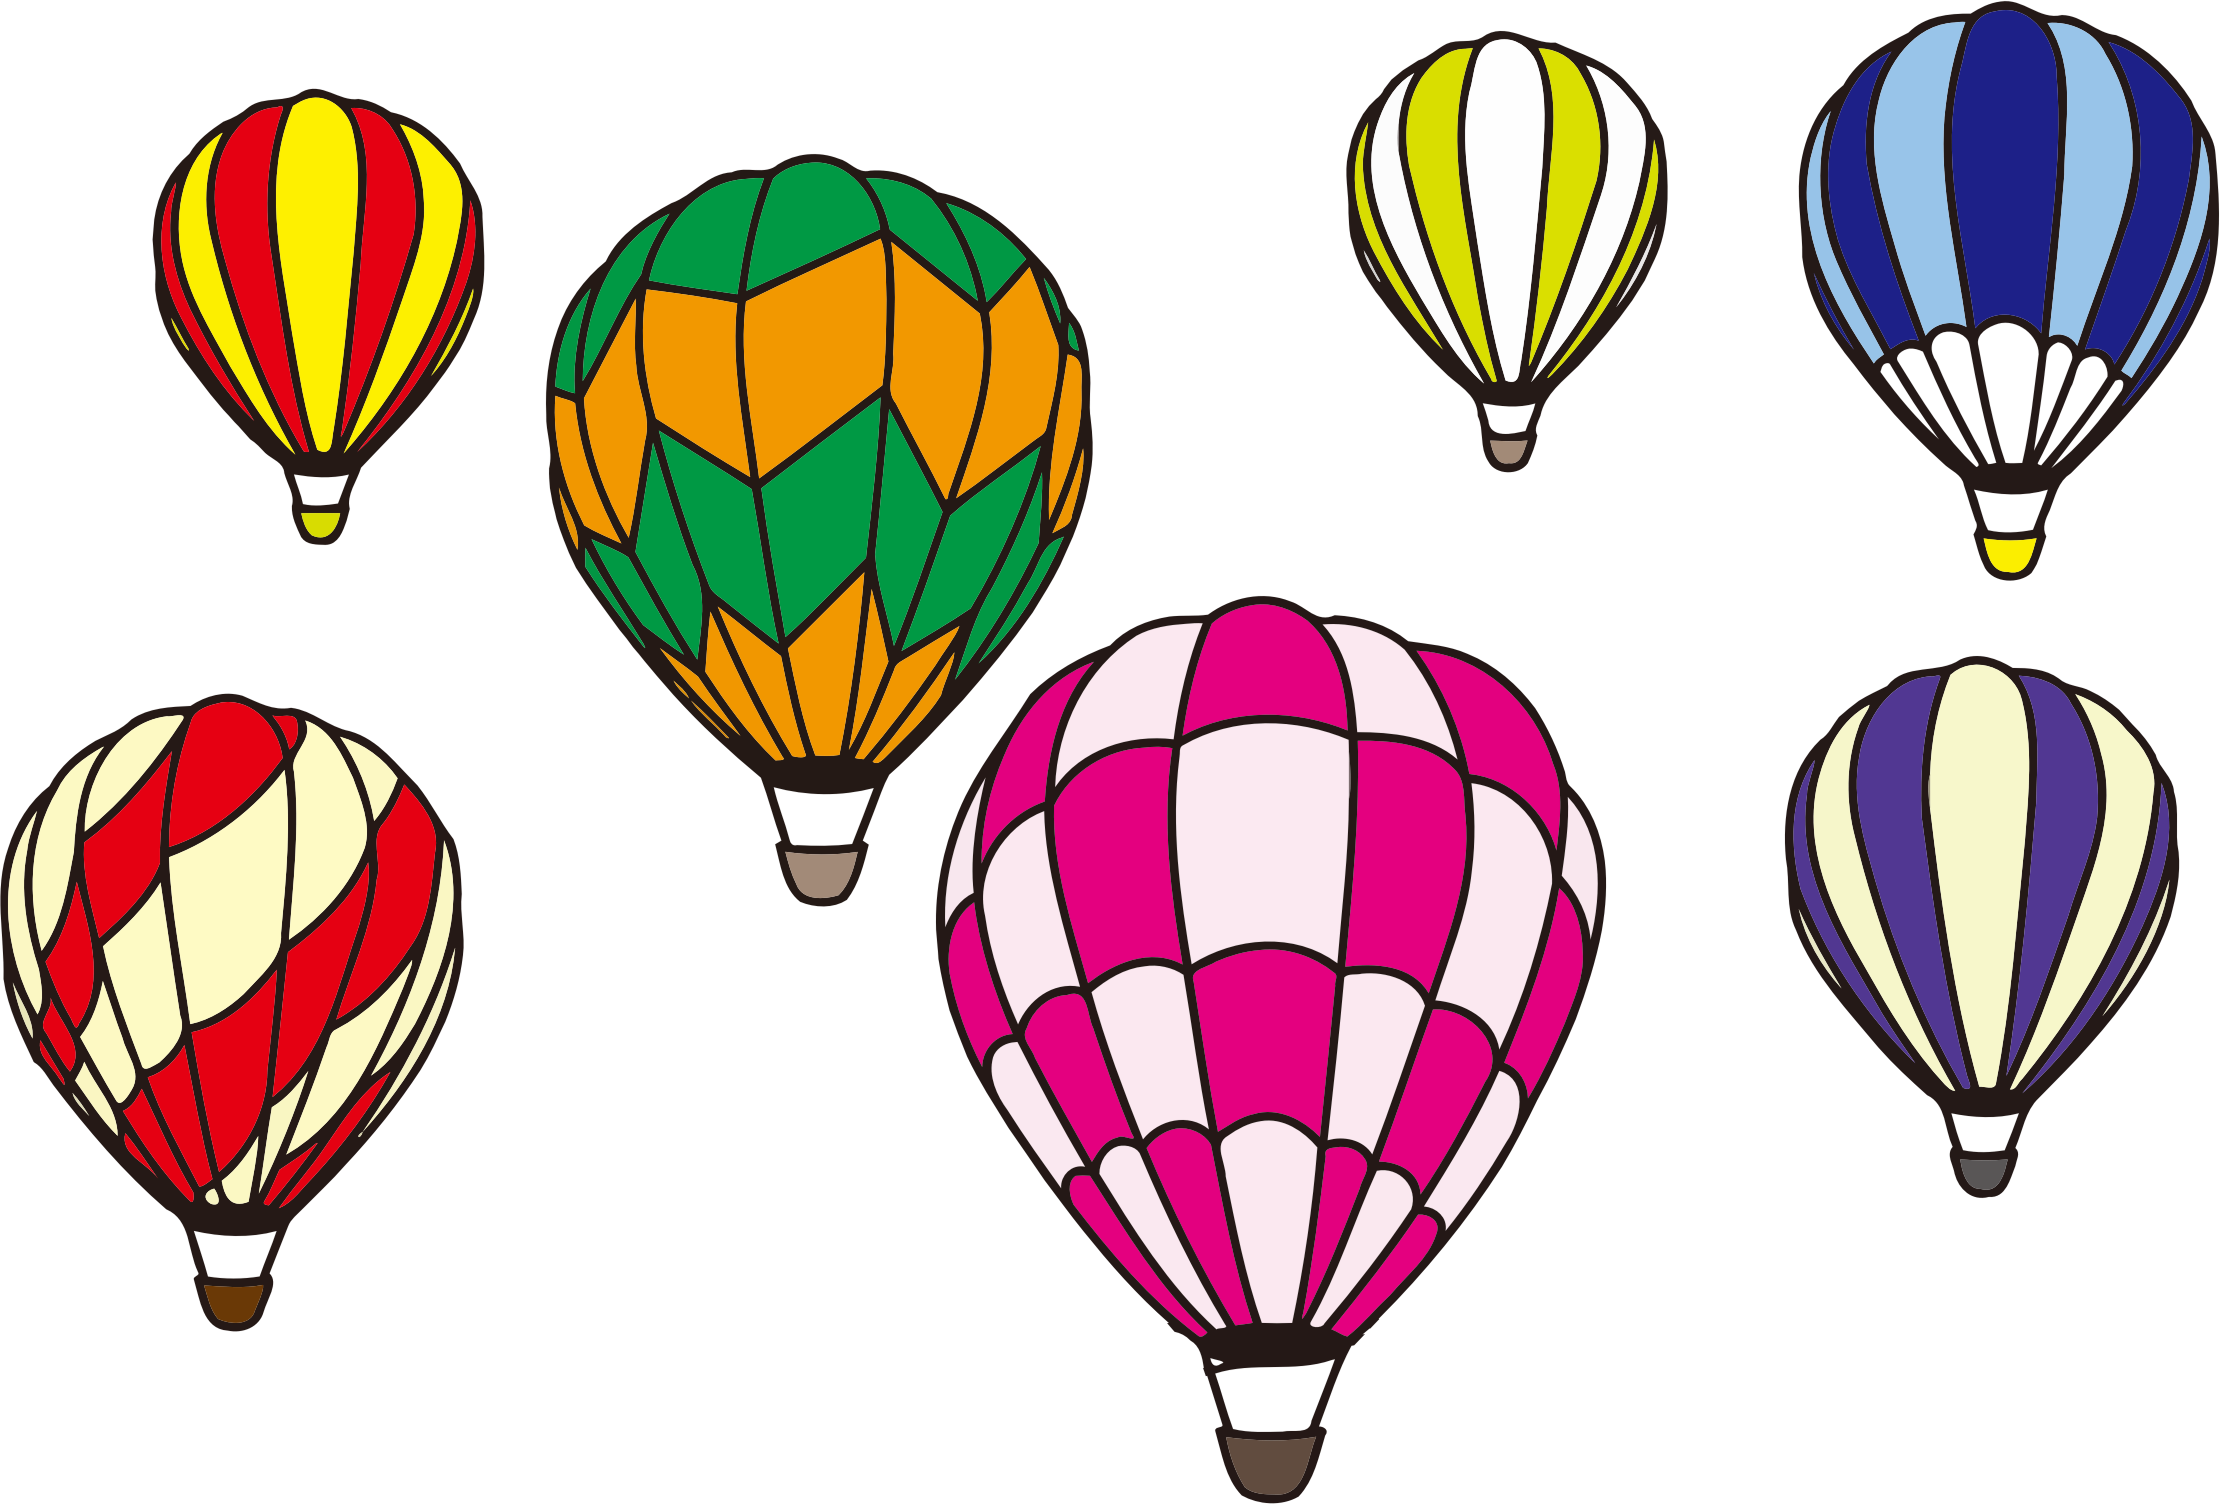 Scene minus icons free. Hot air balloon png transparent background svg free